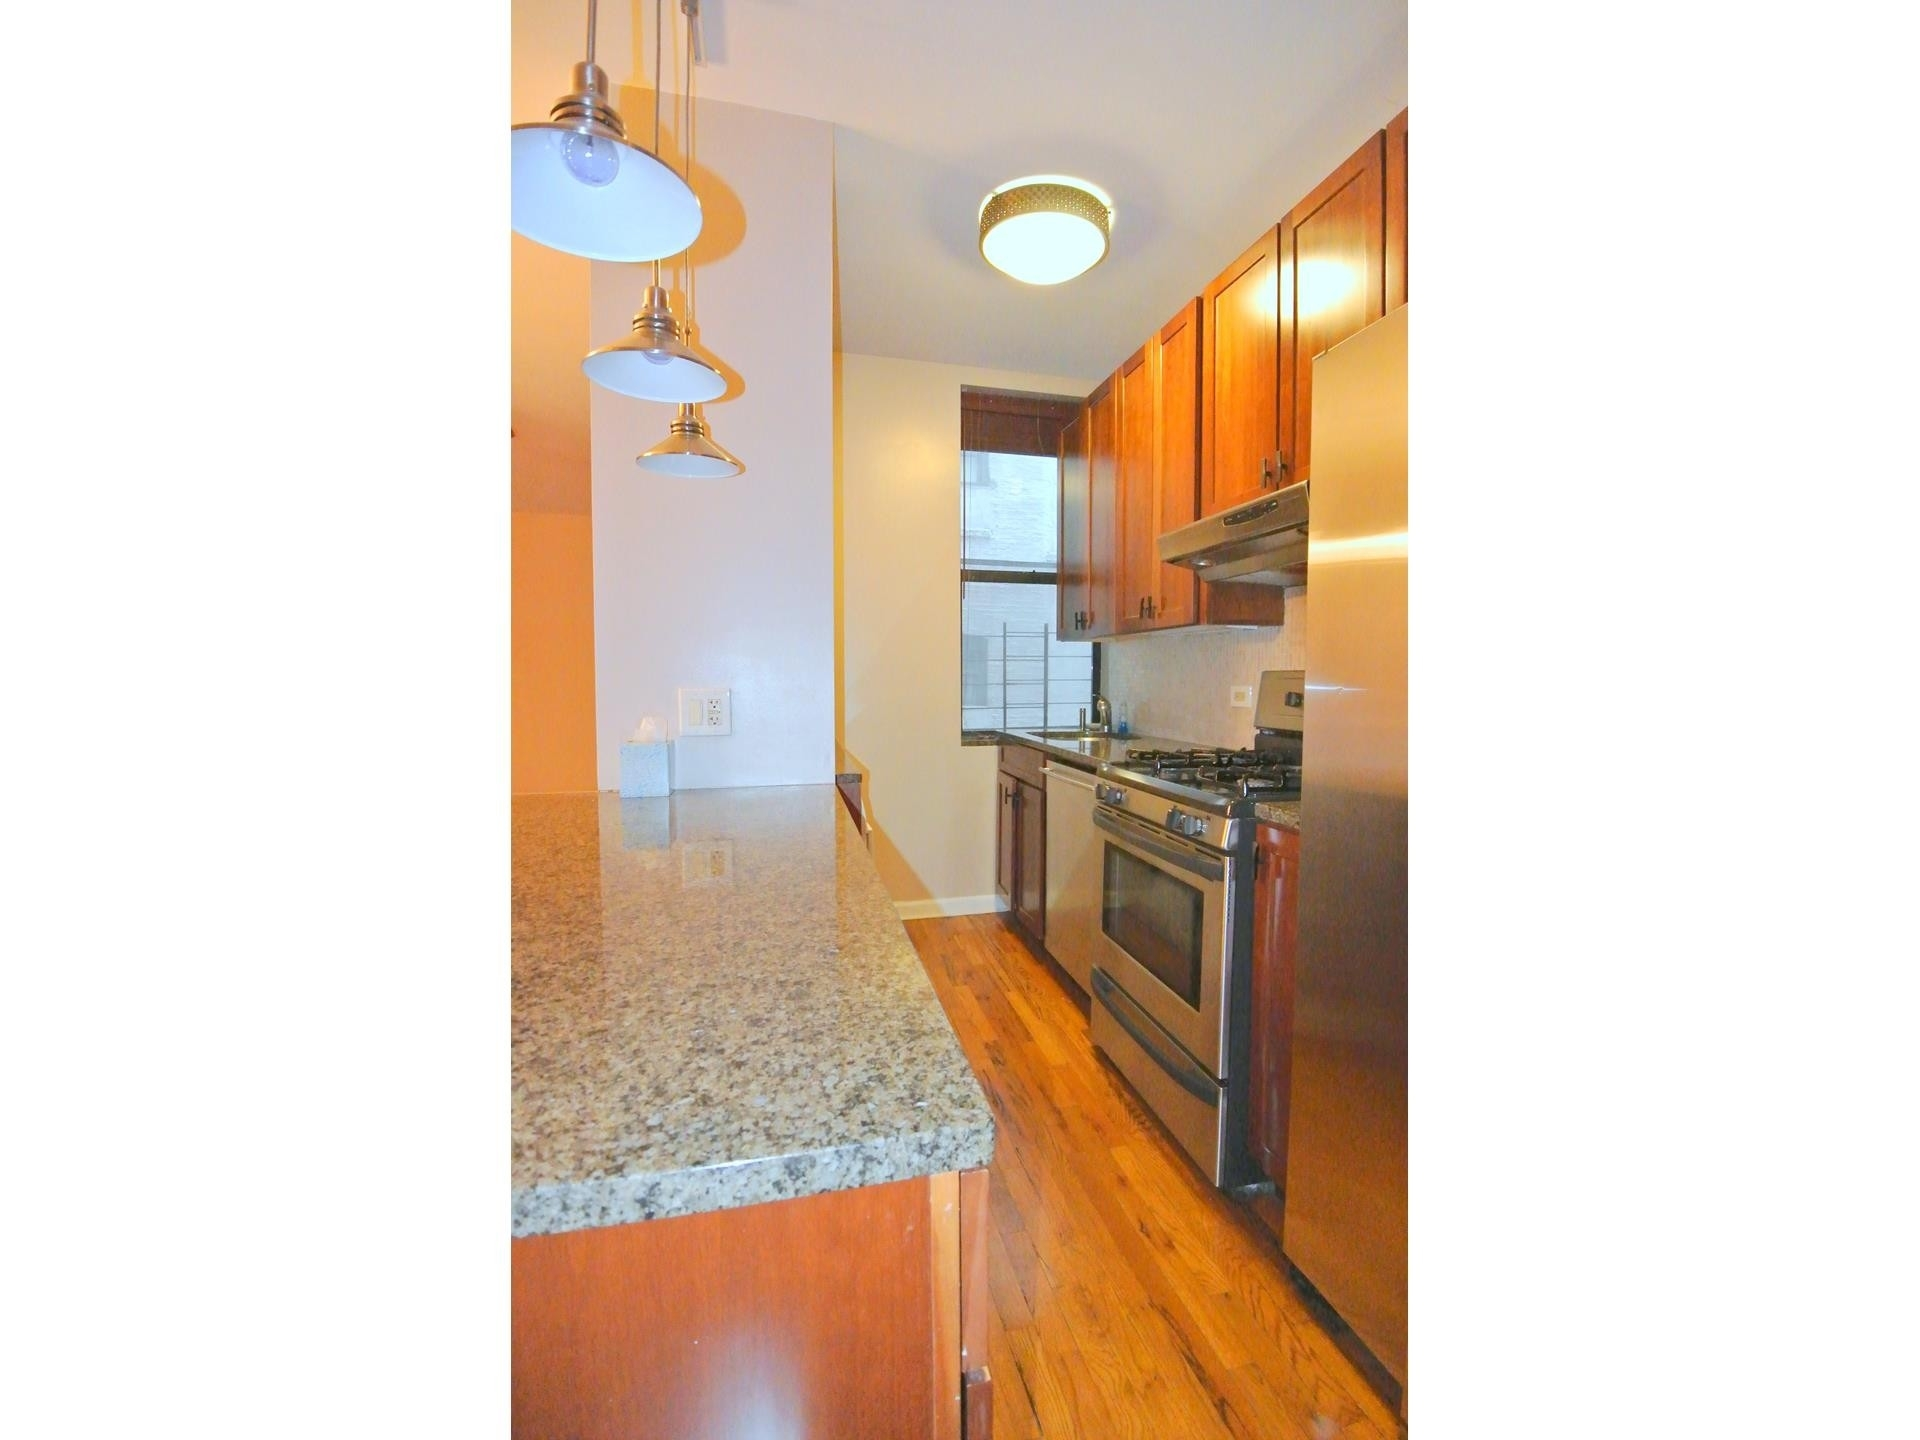 5. Co-op Properties for Sale at 501 West 122nd St, A1 Morningside Heights, New York, NY 10027